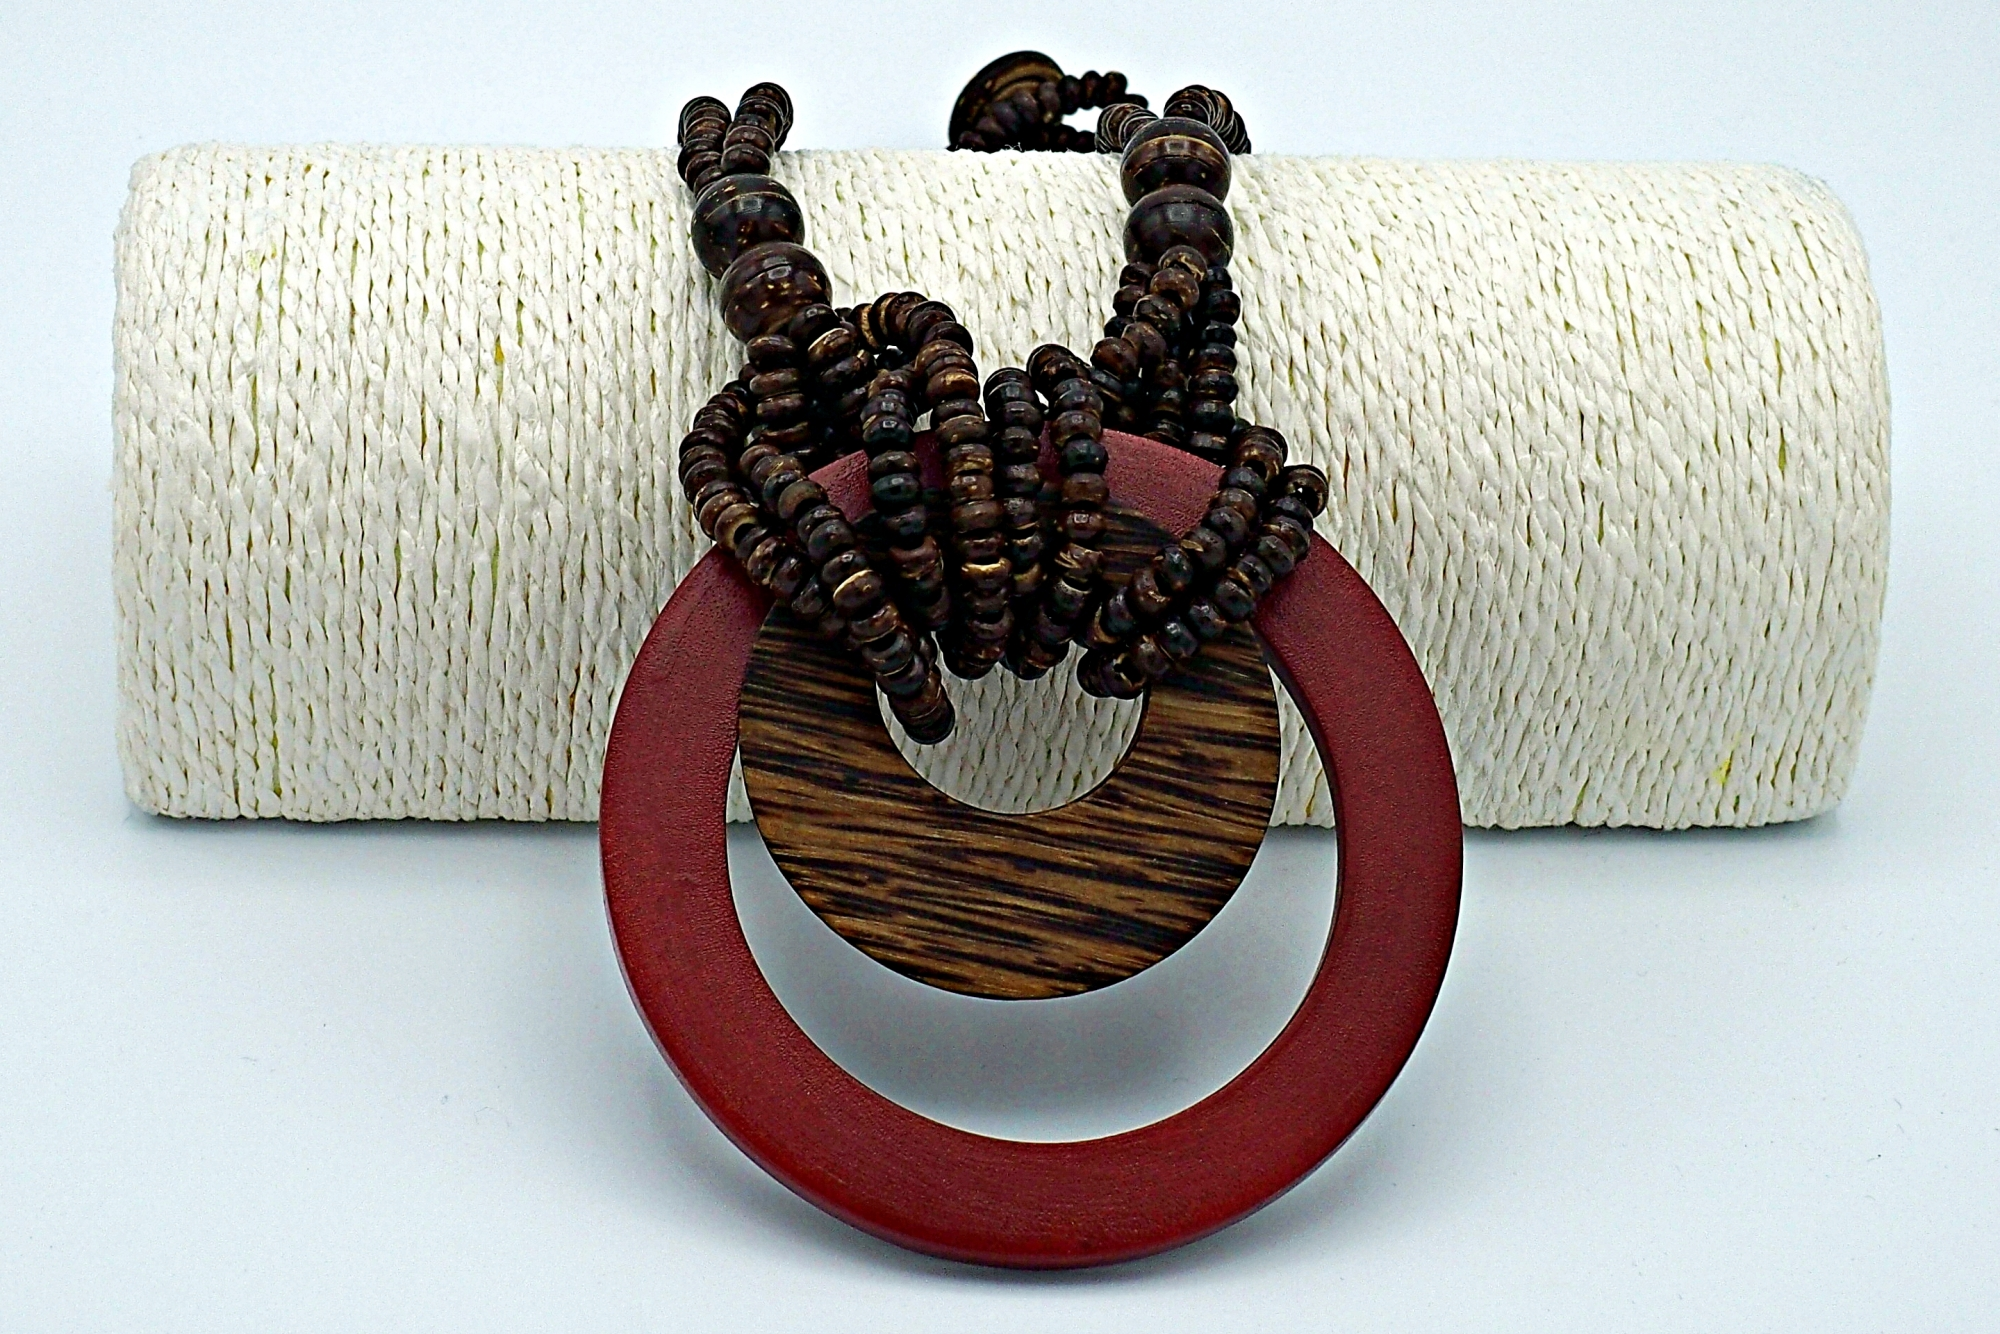 Coconut Shell Jewelry – Bring the Tropics Home